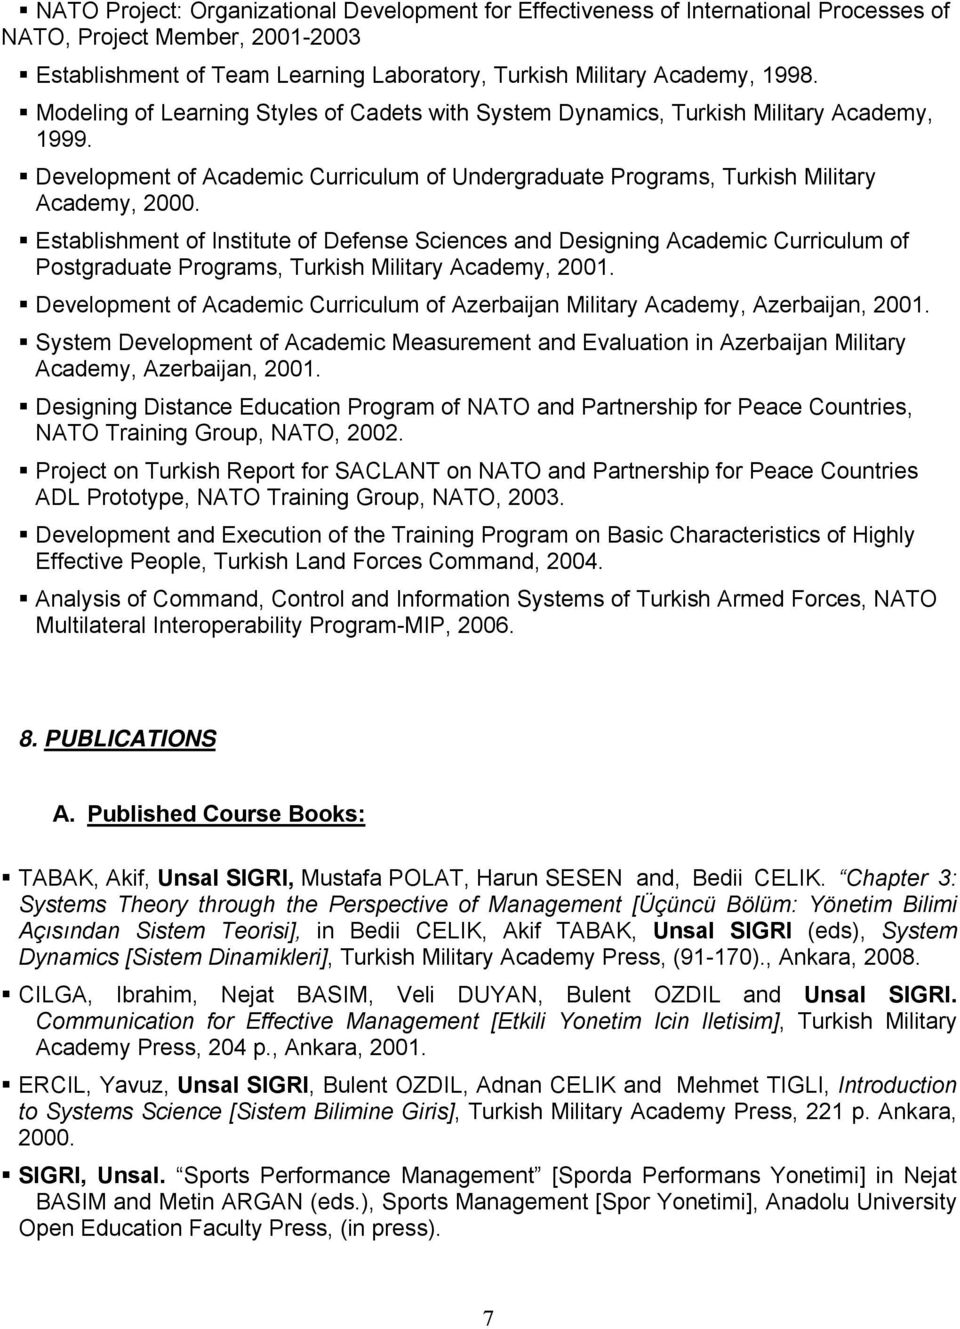 Establishment of Institute of Defense Sciences and Designing Academic Curriculum of Postgraduate Programs, Turkish Military Academy, 2001.